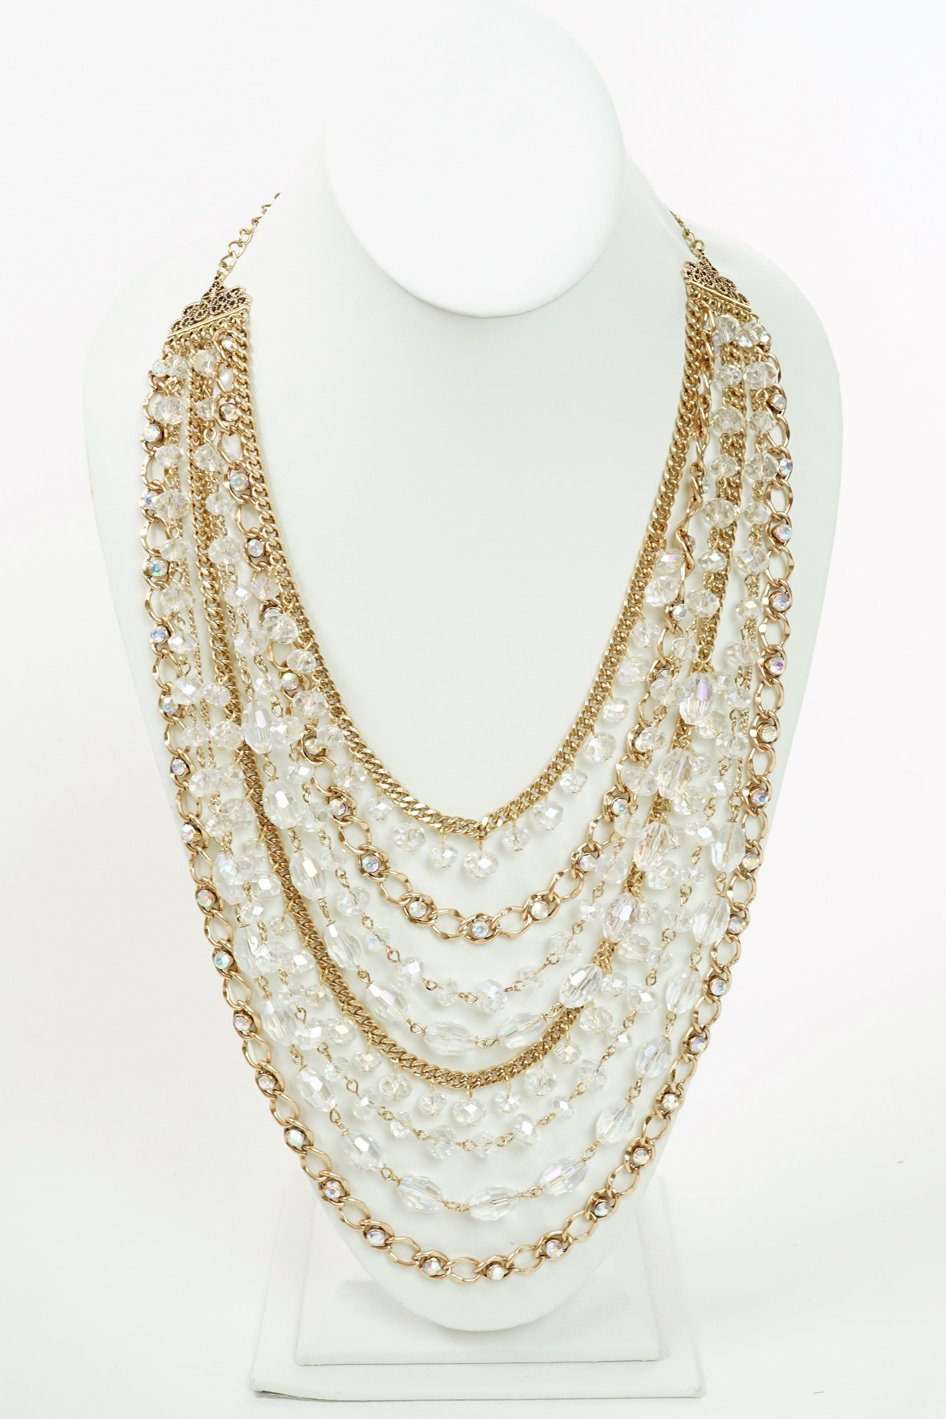 Filigree Beaded Necklace Set-Clear AB/Antique Gold